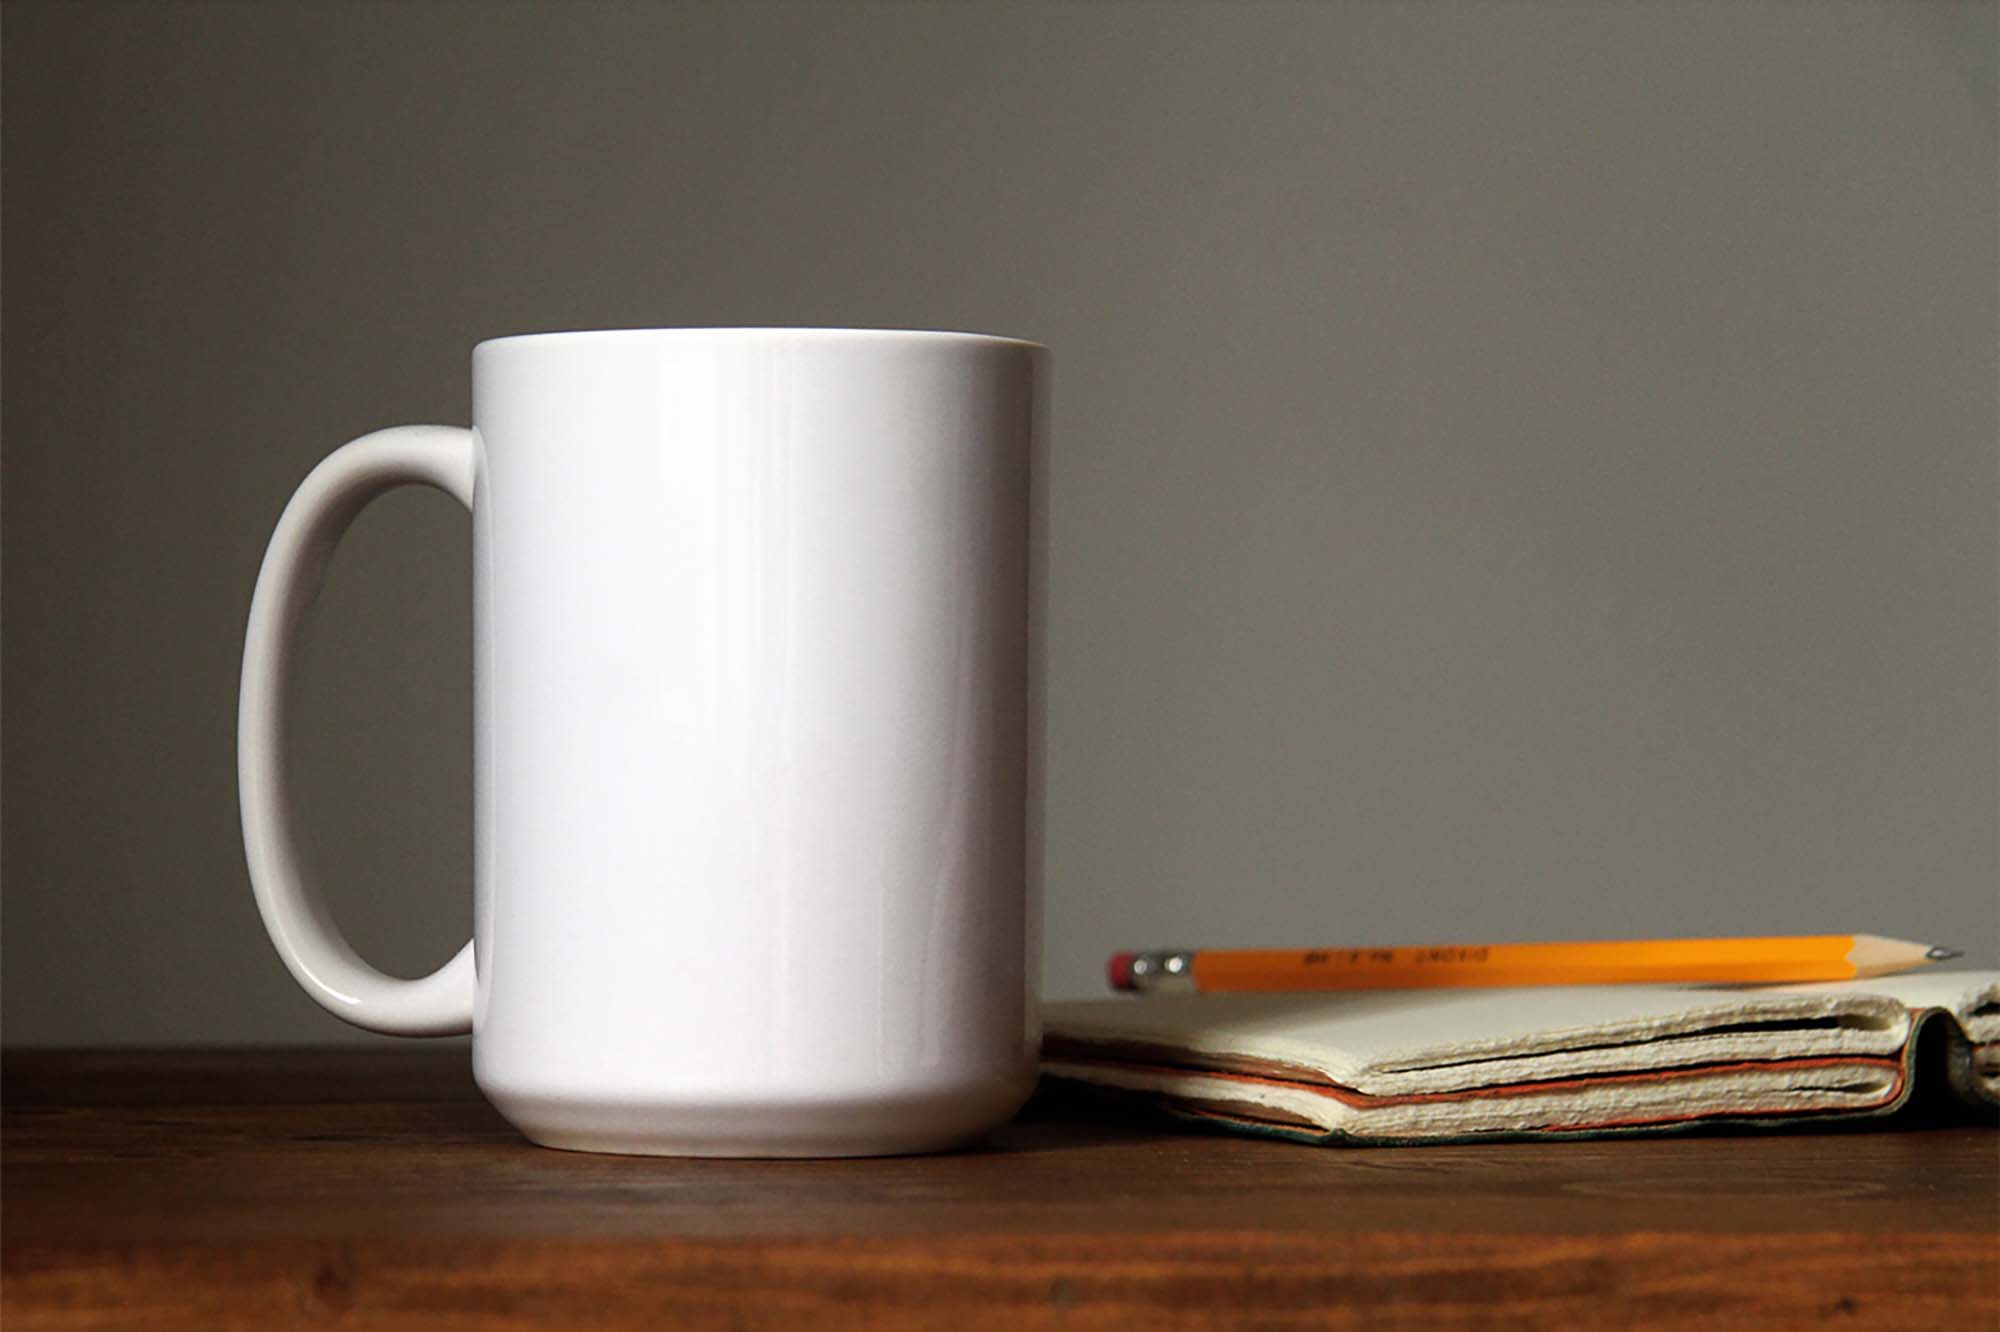 Mug Mockup on Table Mockup 2